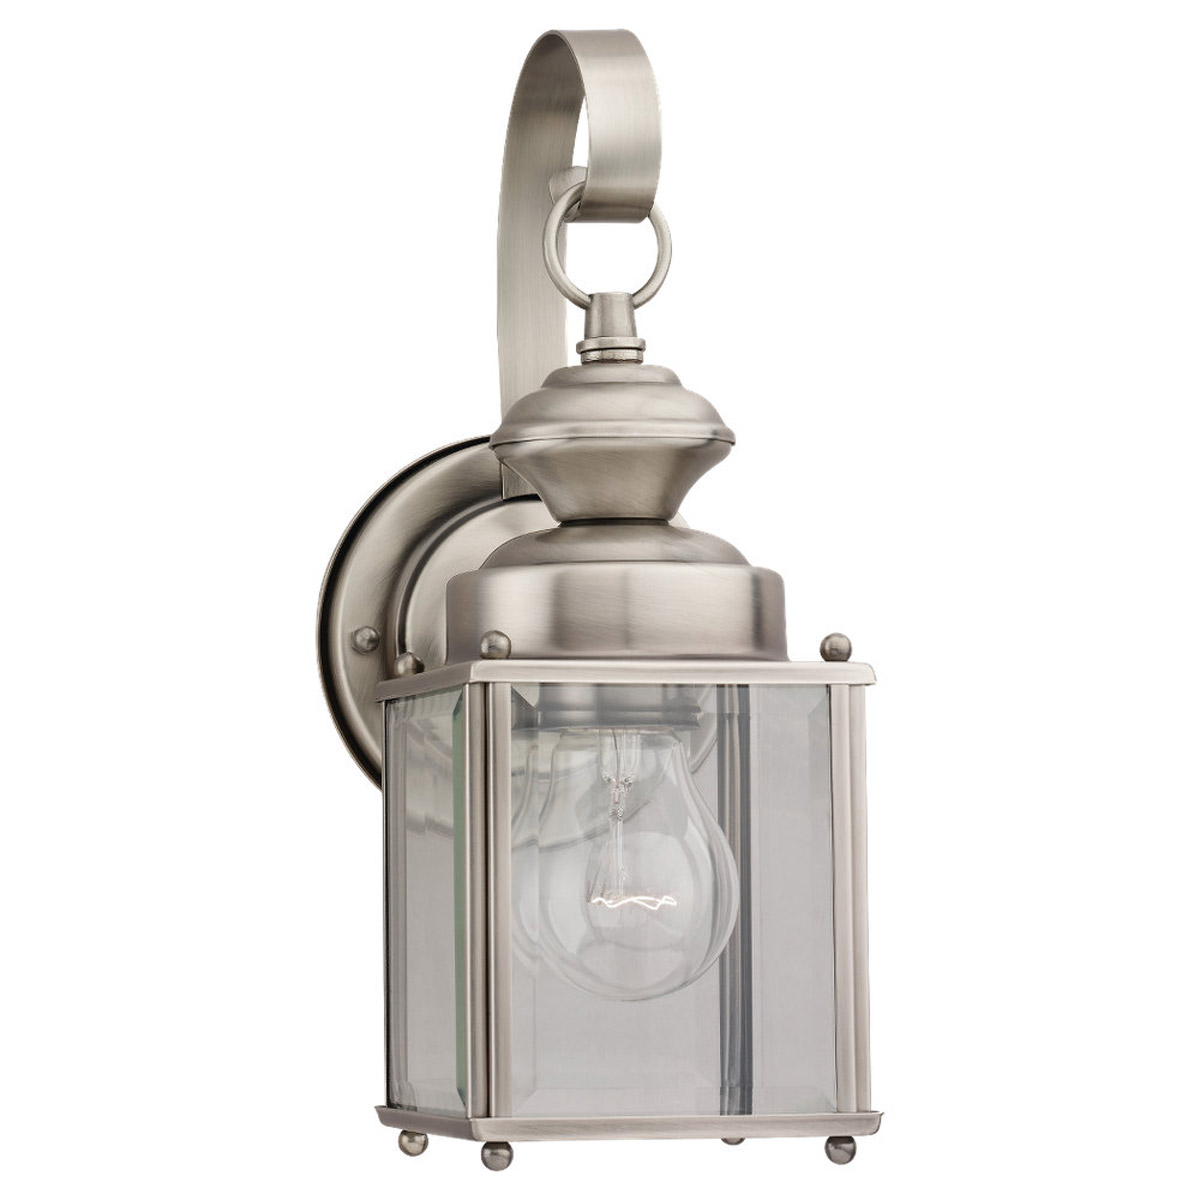 Sea Gull Lighting Jamestowne 1 Light Outdoor Wall Lantern in Antique Brushed Nickel 8456-965 photo